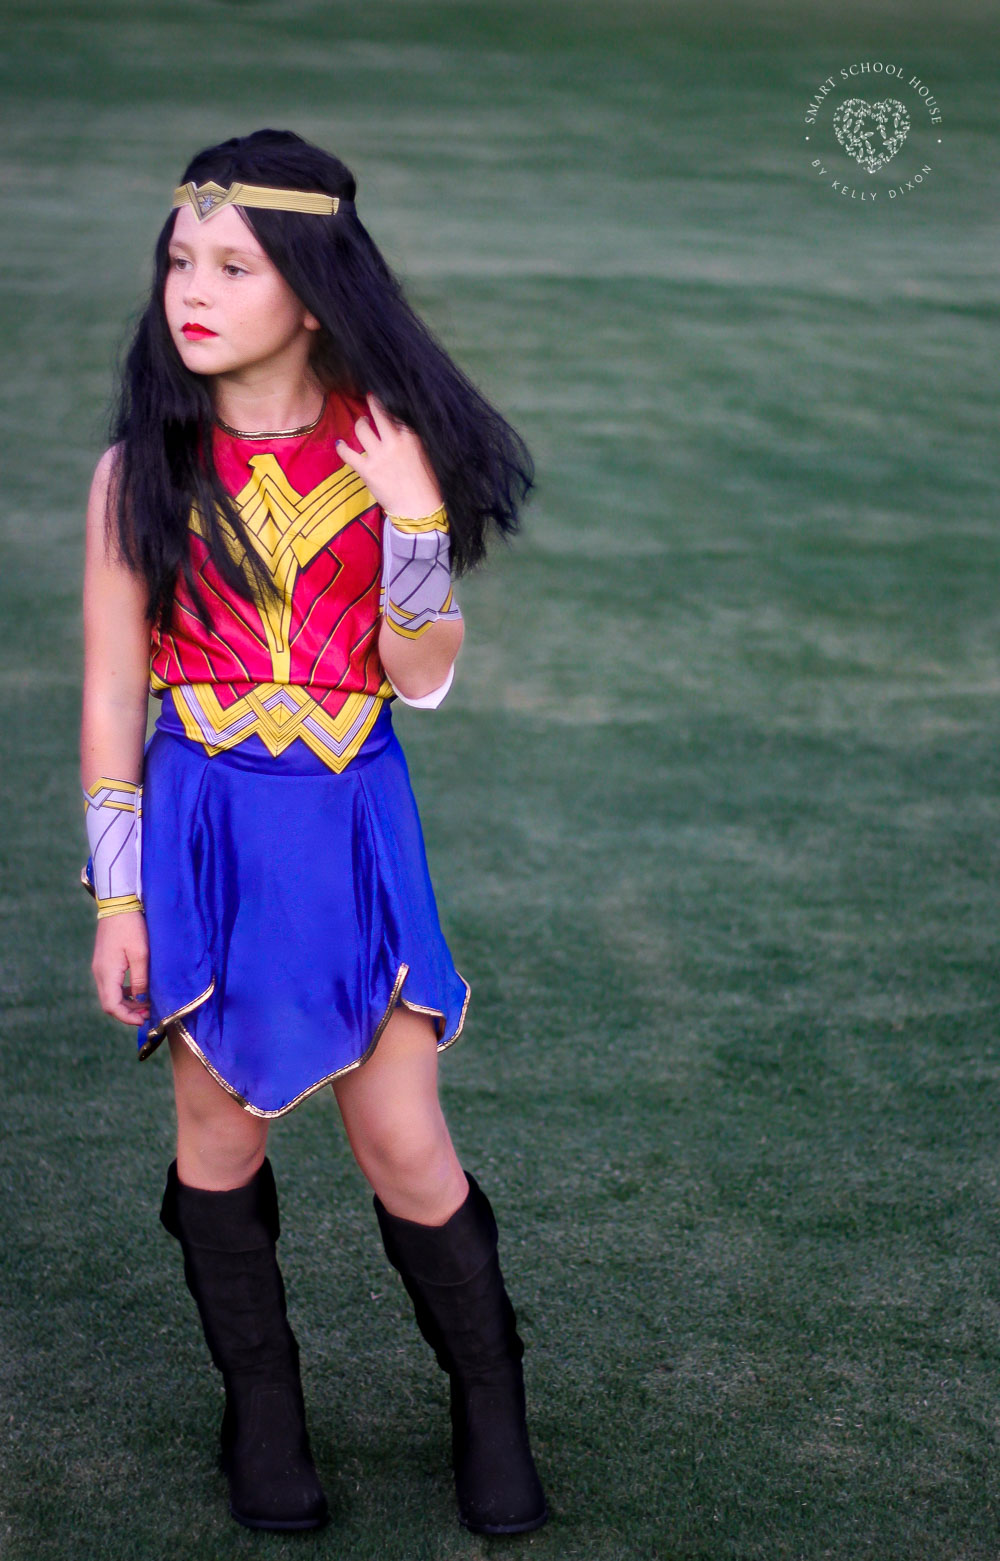 Wonder Woman costume for girls. I LOVE THIS!